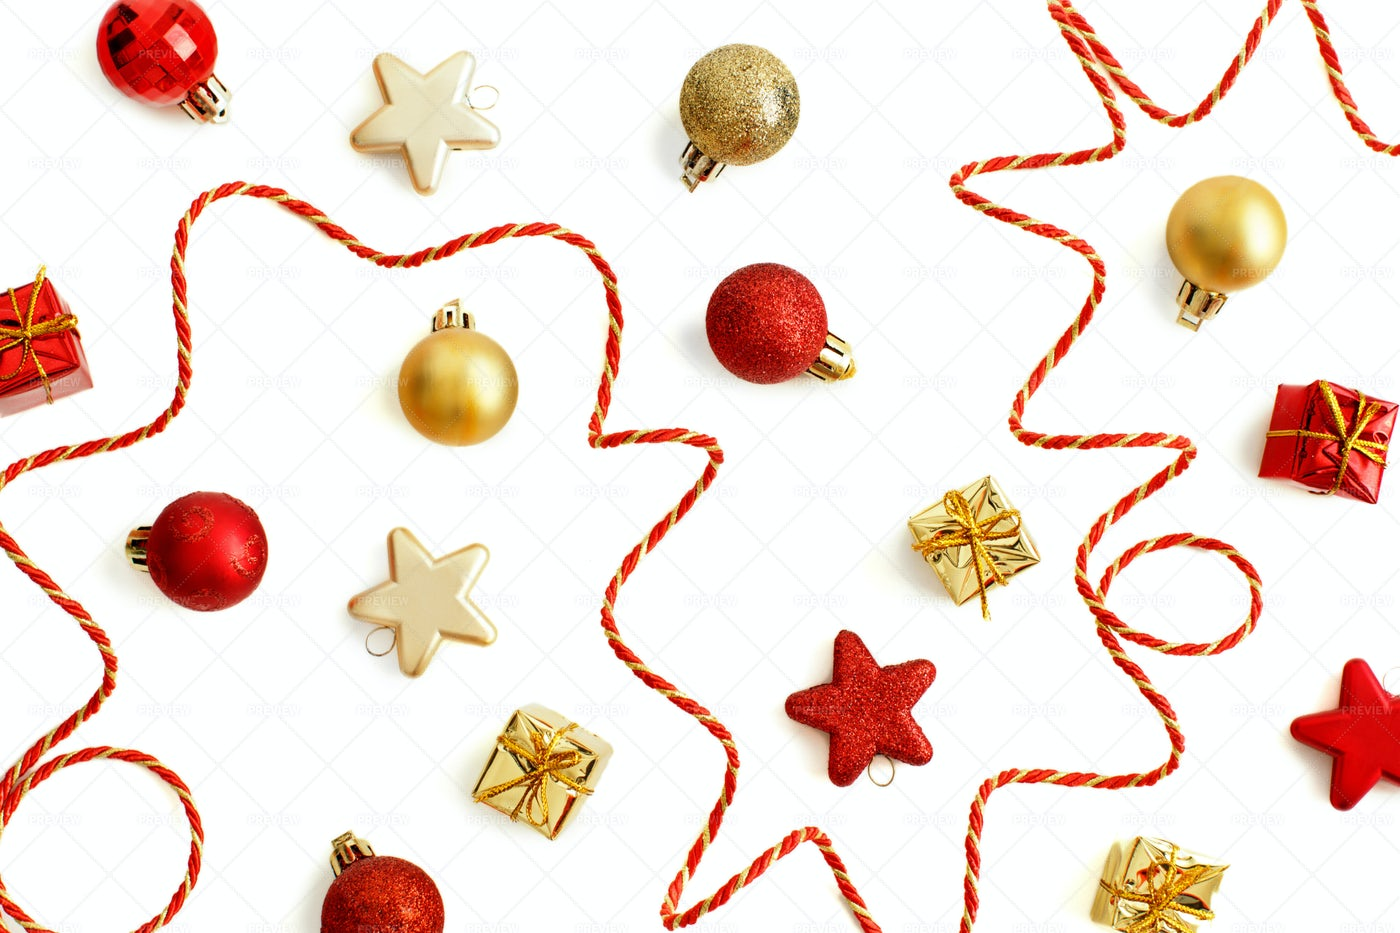 Golden And Red Christmas Decorations: Stock Photos